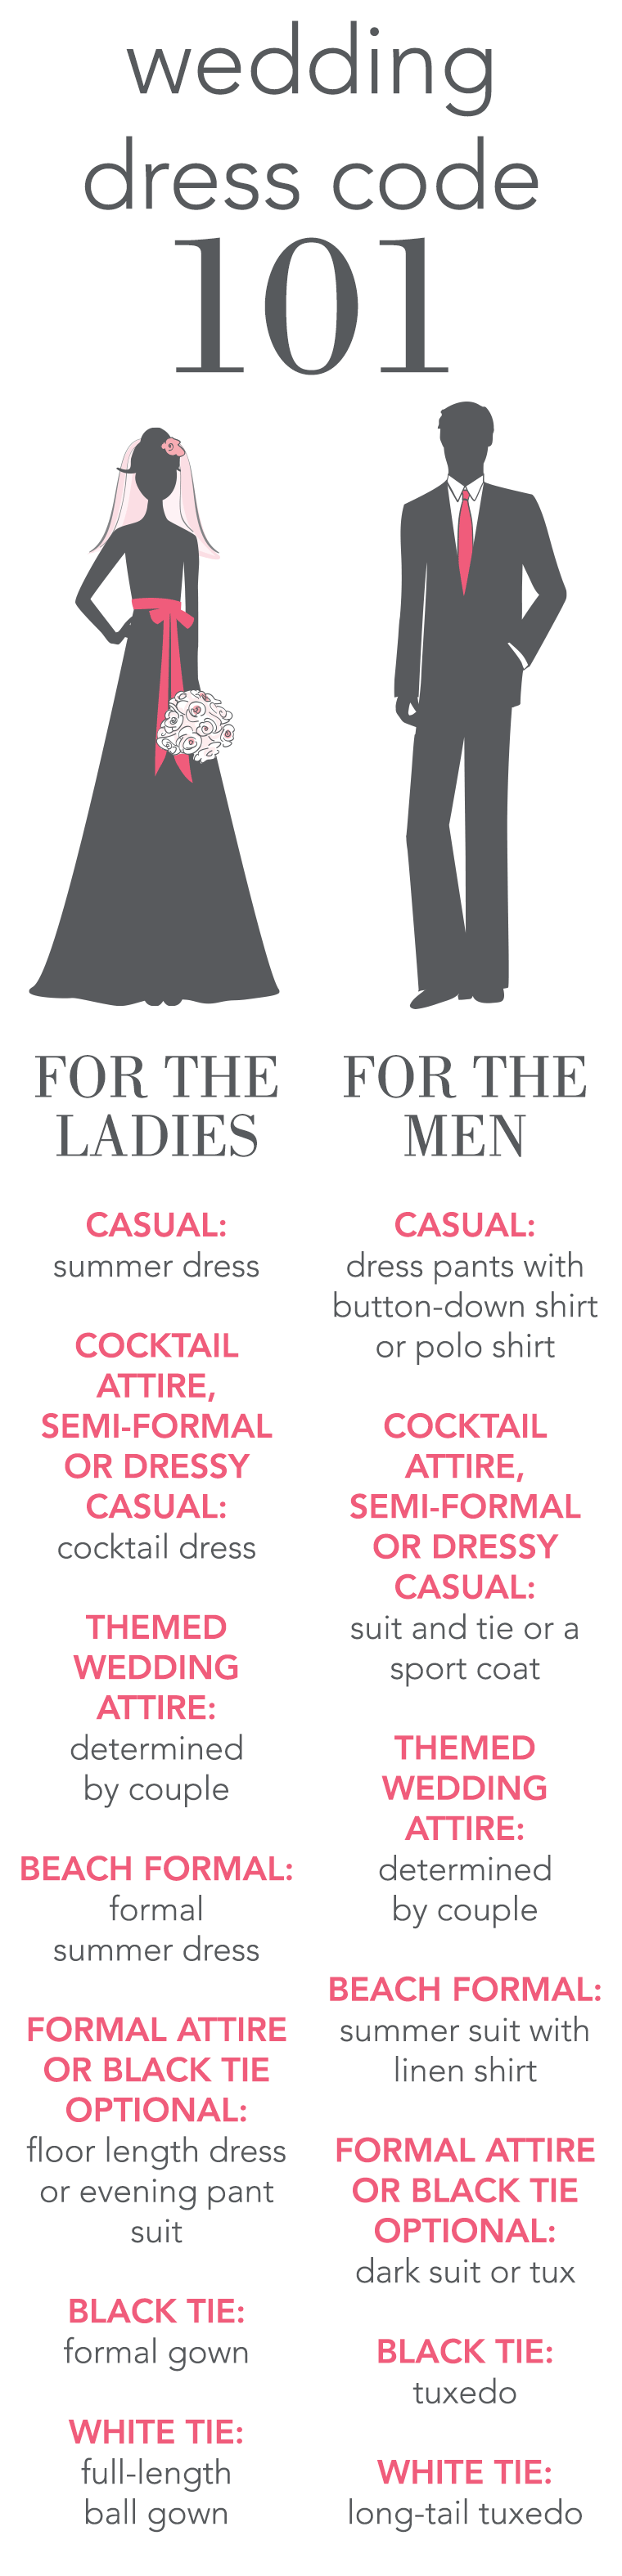 Wedding Dress Code 101